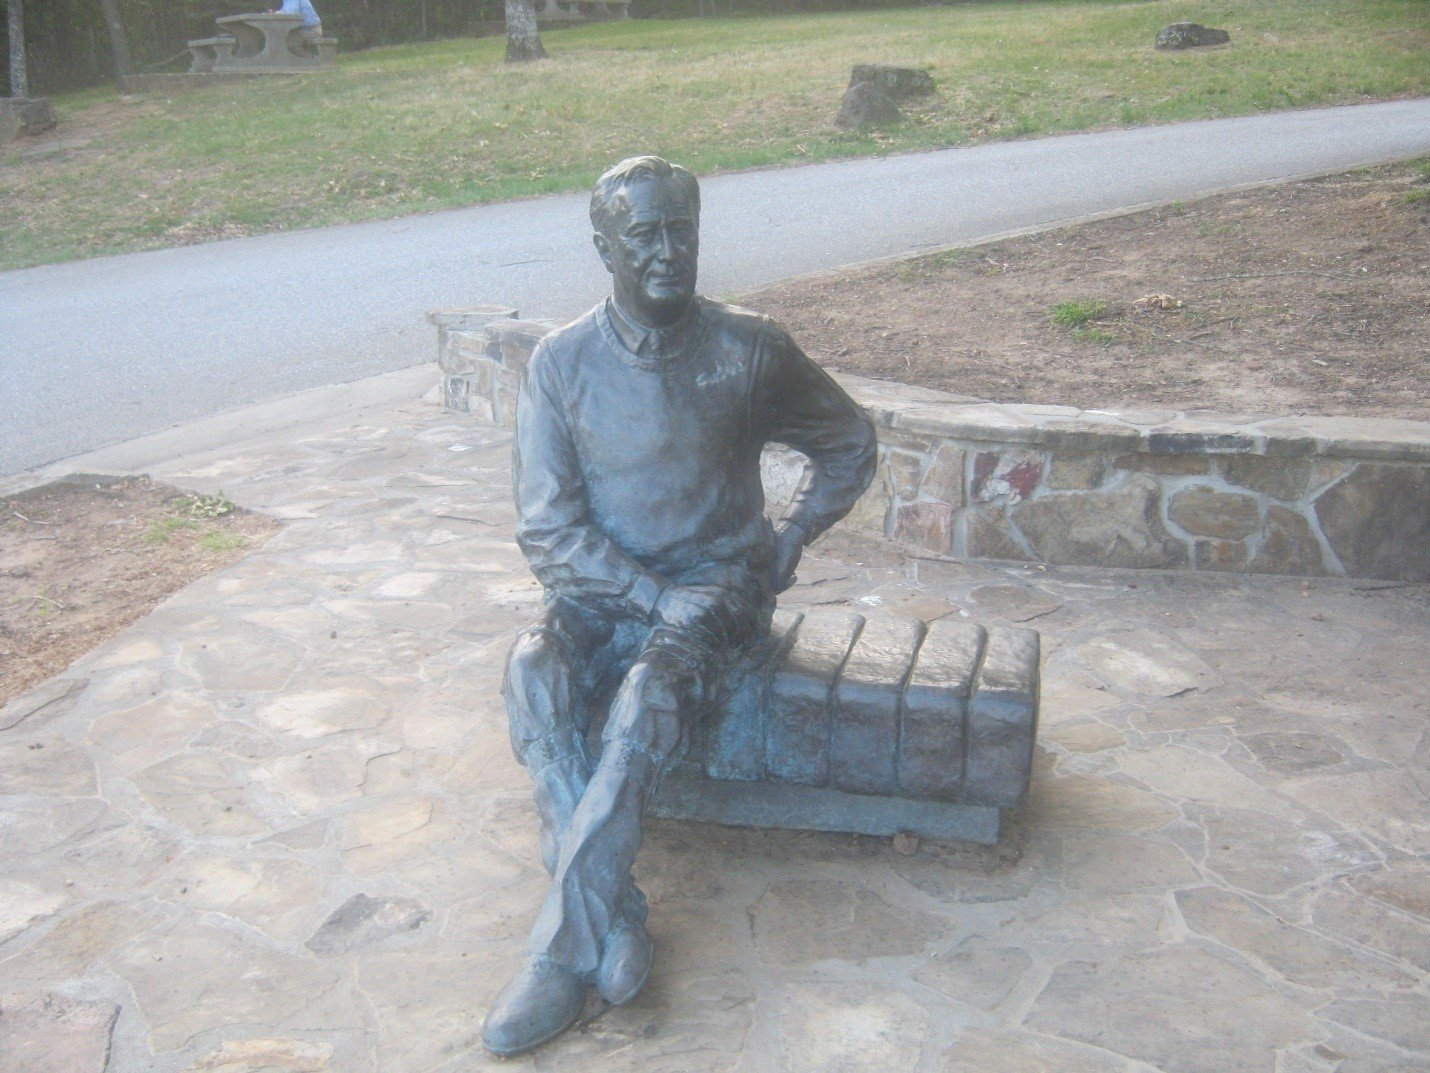 FDR Statue Overlooking Dowdell's Knob